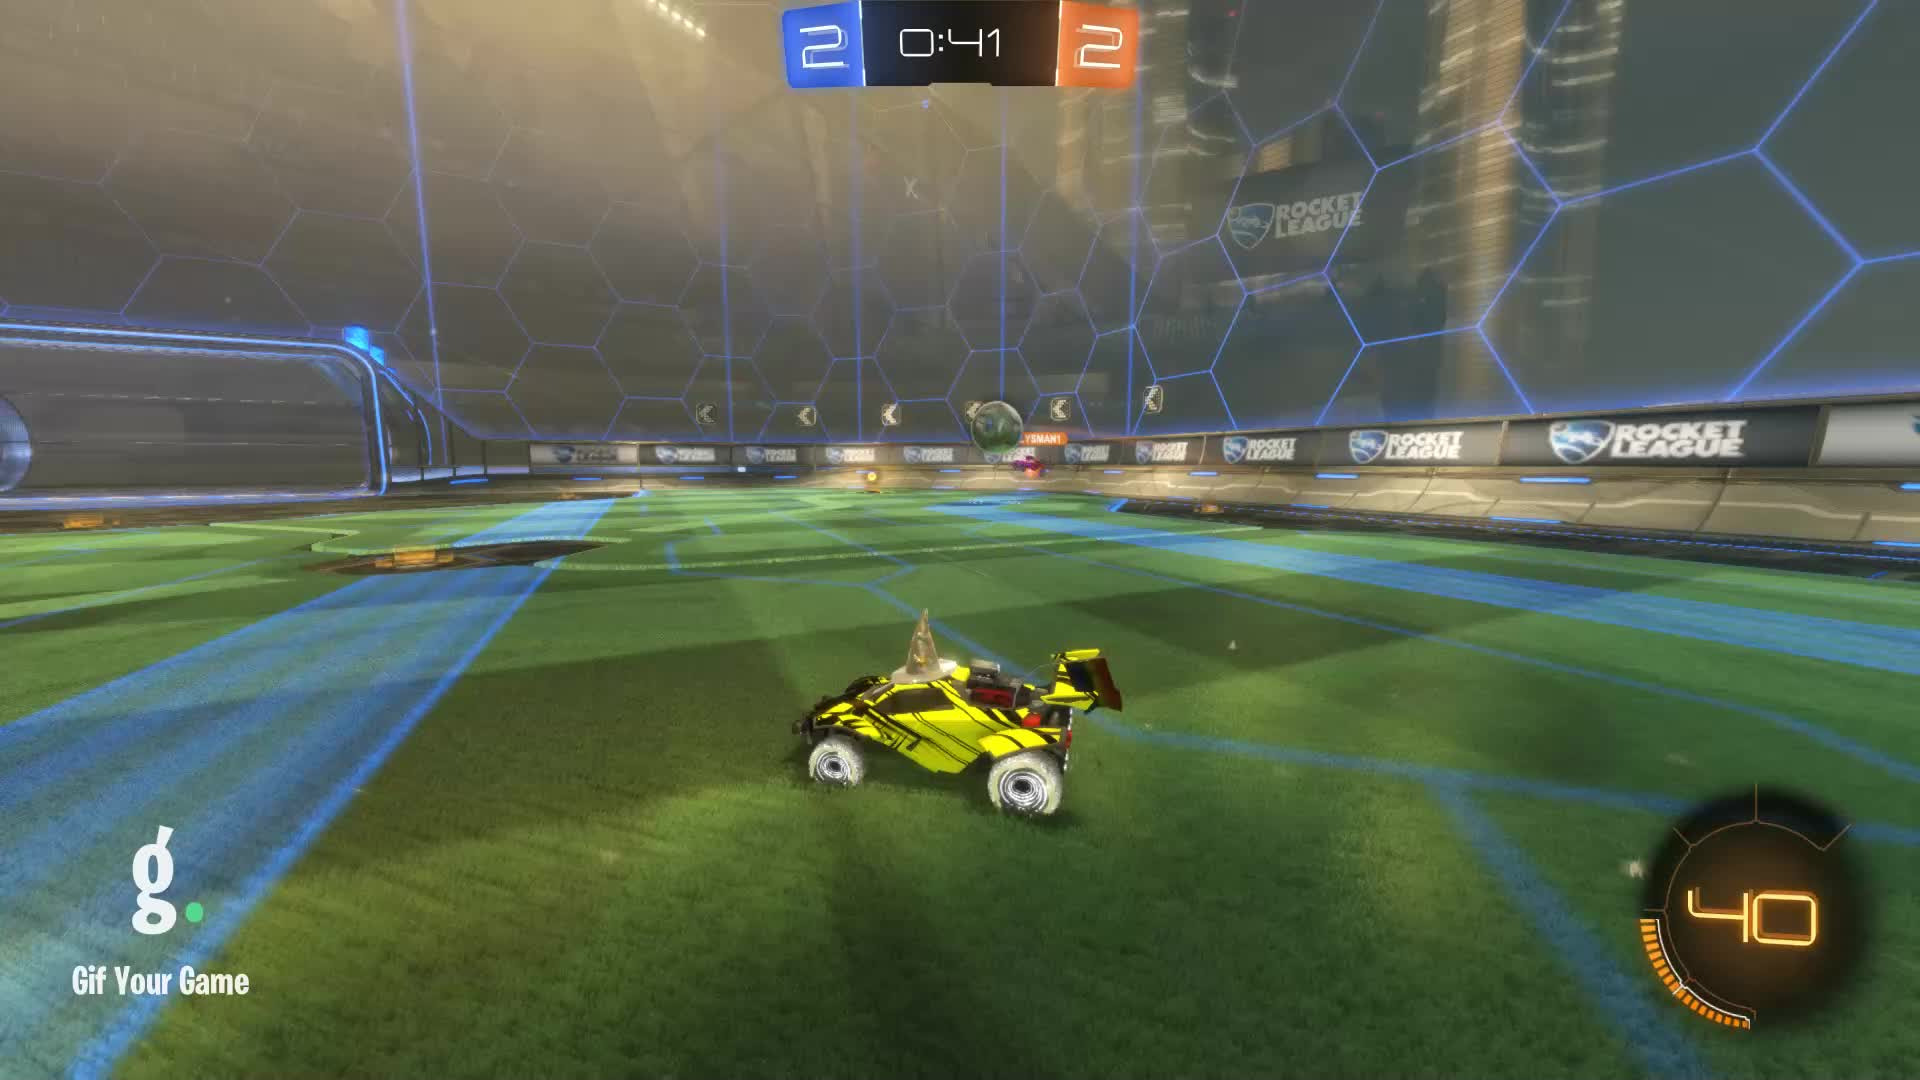 Gif Your Game, GifYourGame, I like beards :), Rocket League, RocketLeague, Goal 5: I like beards :) GIFs